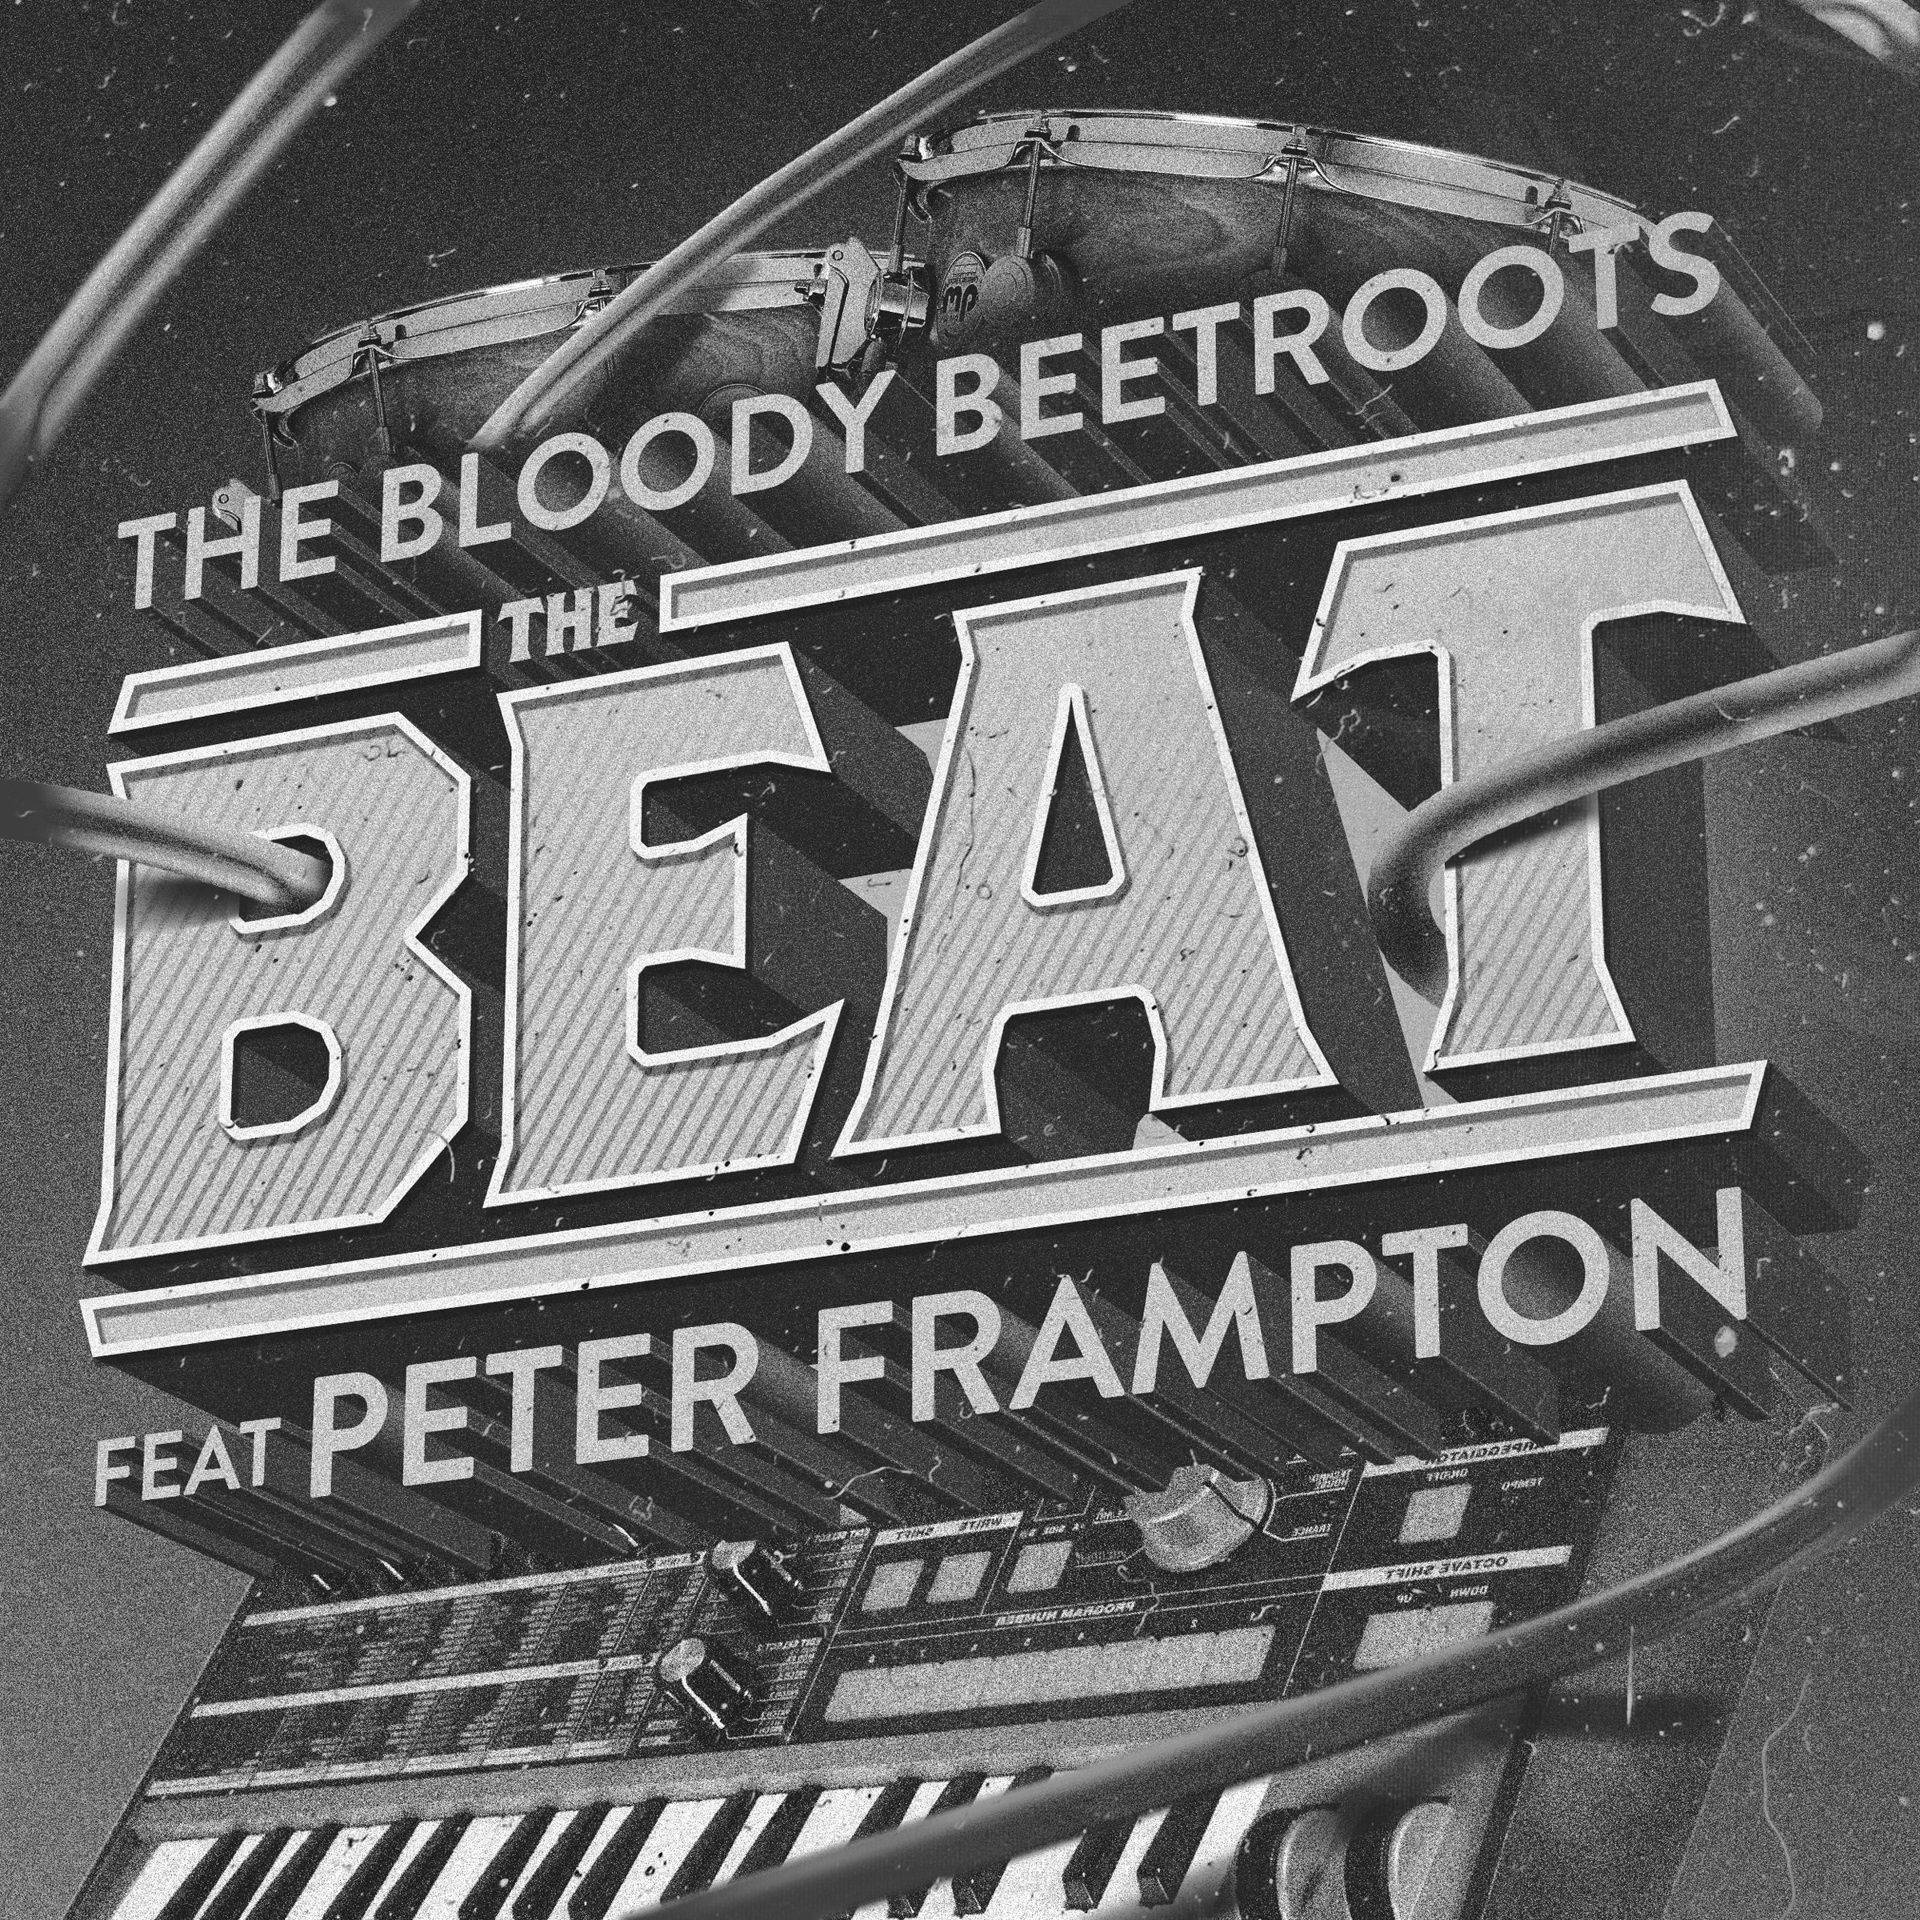 The Bloody Beetroots The Beat (iTunes Cover)